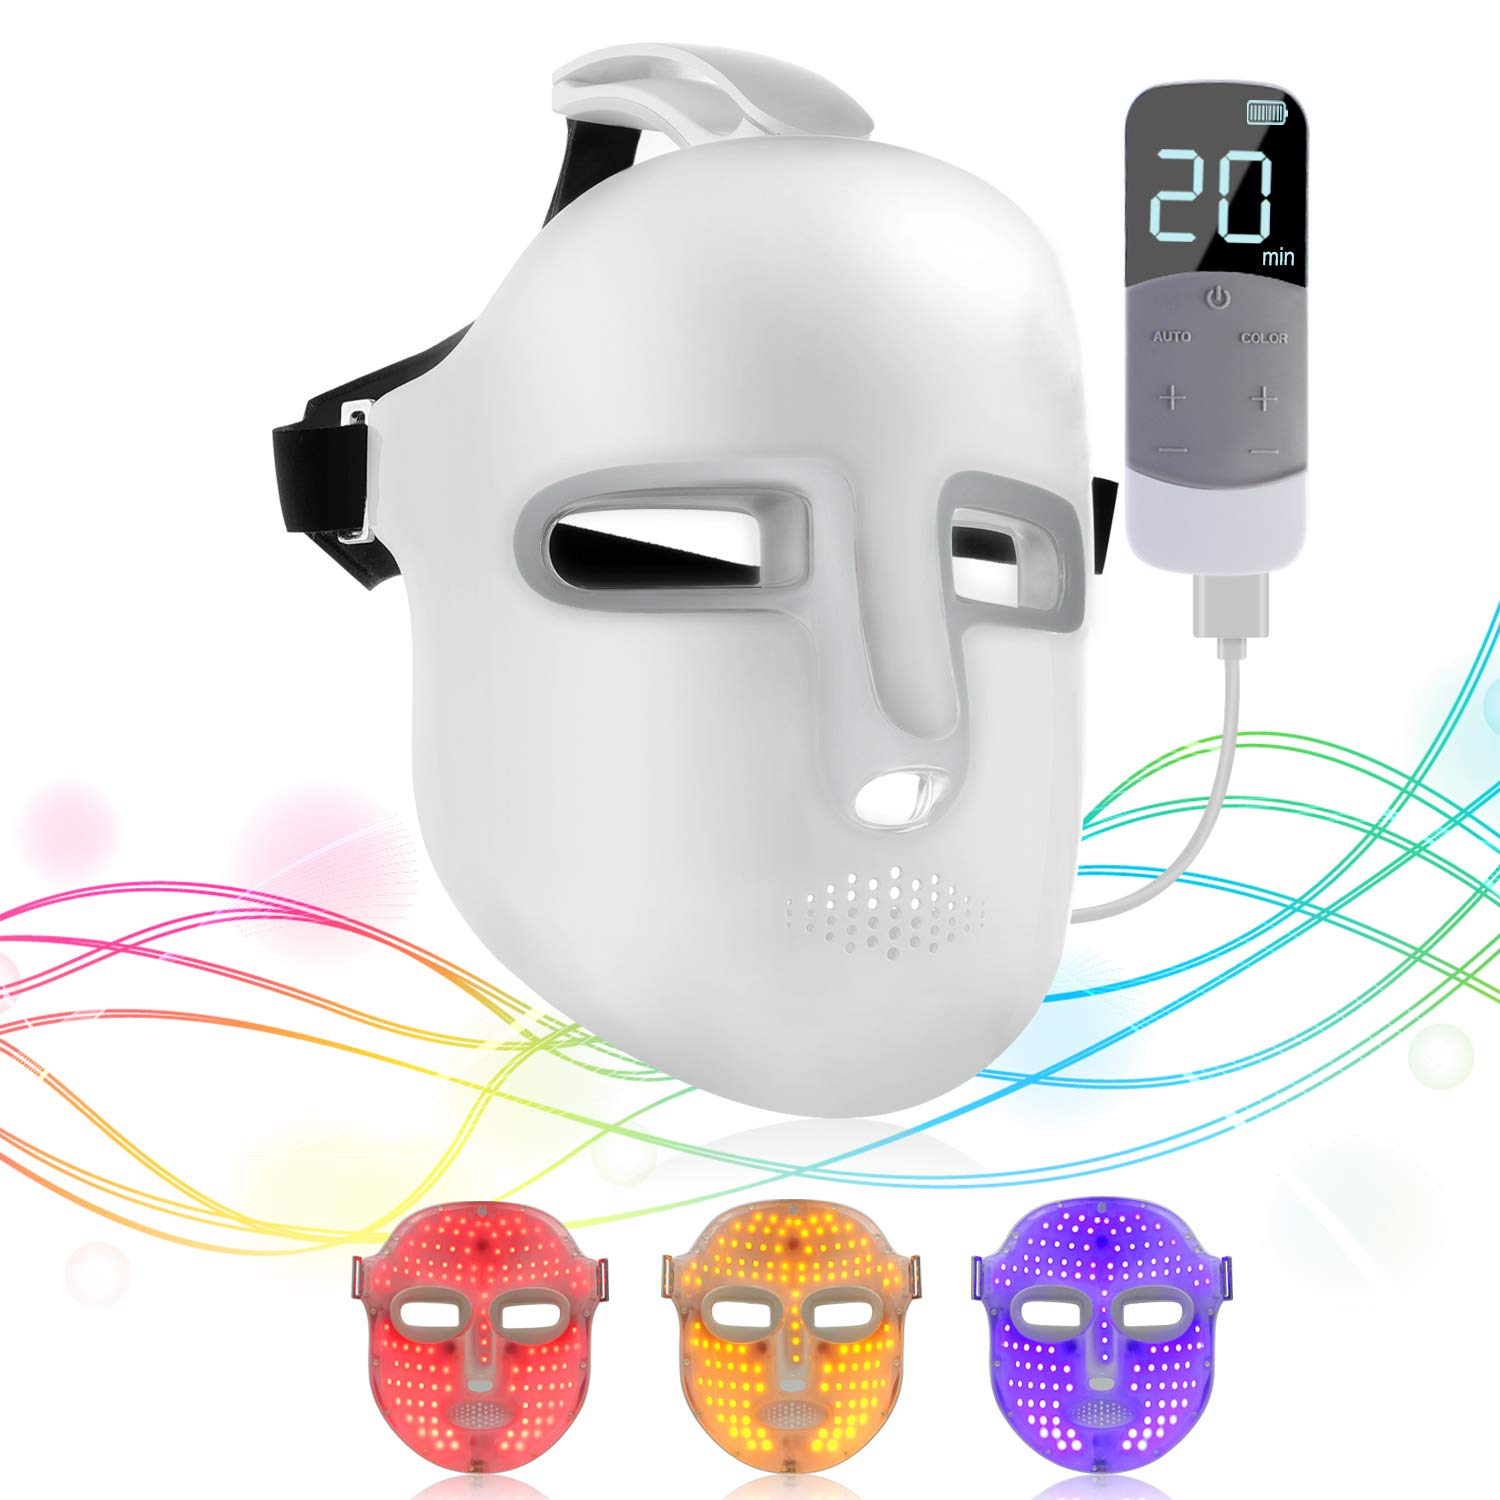 NEWKEY Led Light Therapy Facial Mask - Uses Newest Red/Blue/Yellow Light Therapy For Skin Rejuvenation|Whitening|Anti Aging|Smoothening Wrinkles|Weakening Scarring|Lighter Weight and More Comfortable